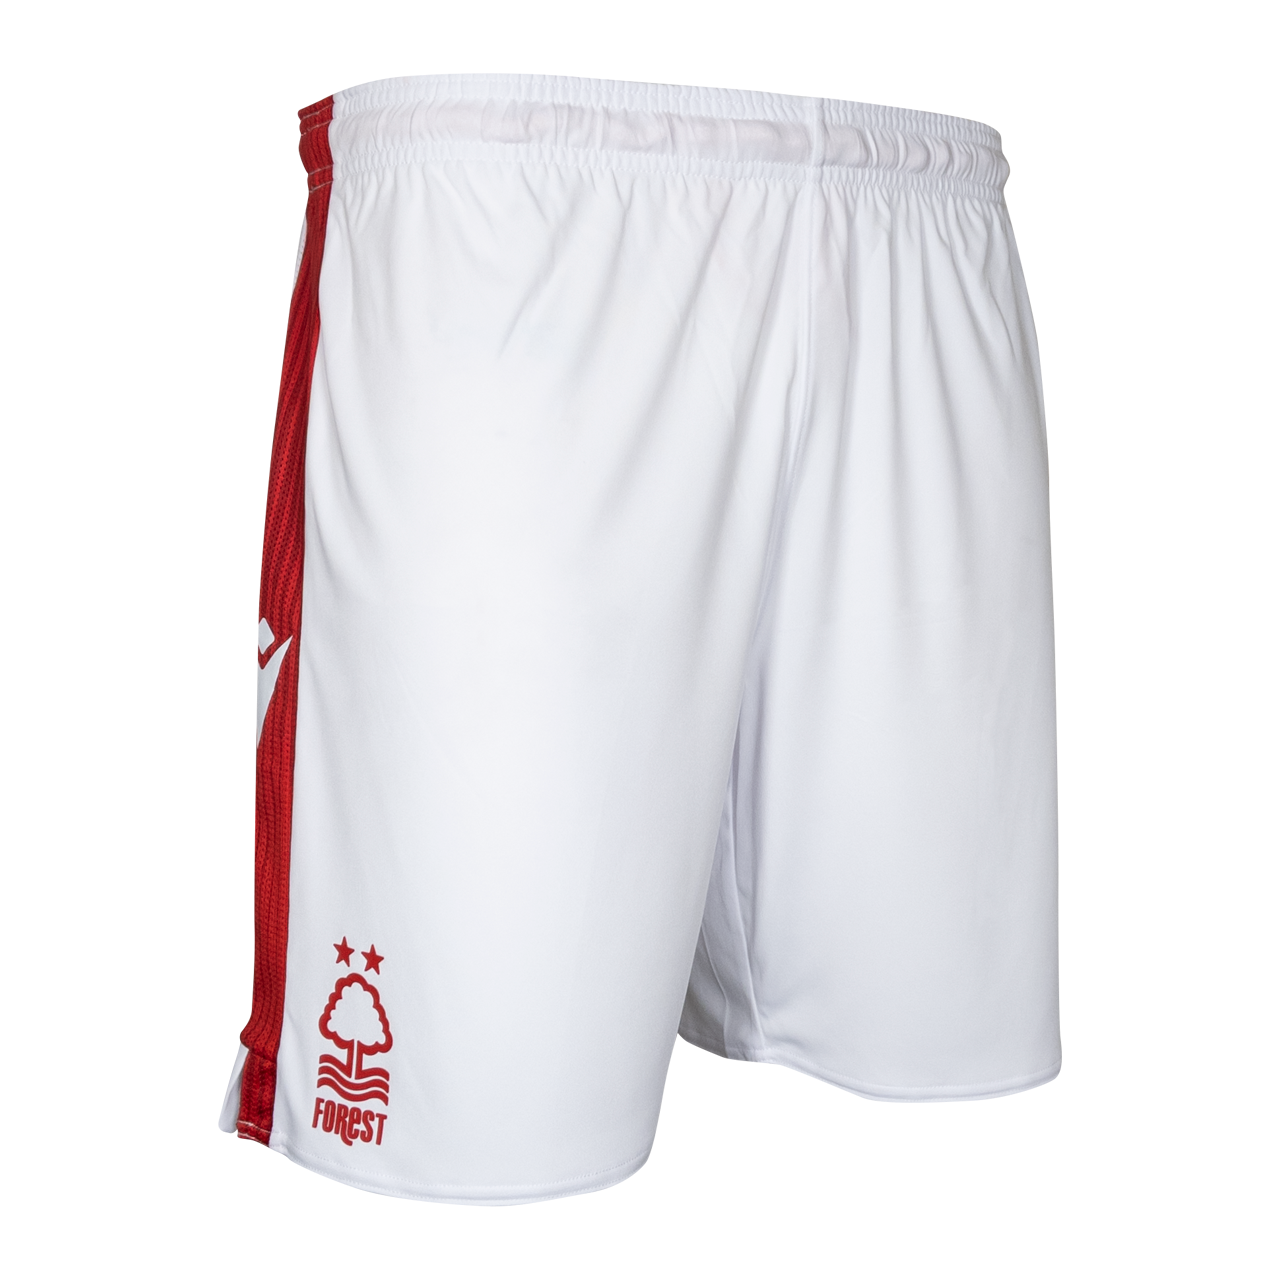 NFFC Mens Home Shorts 2019/20